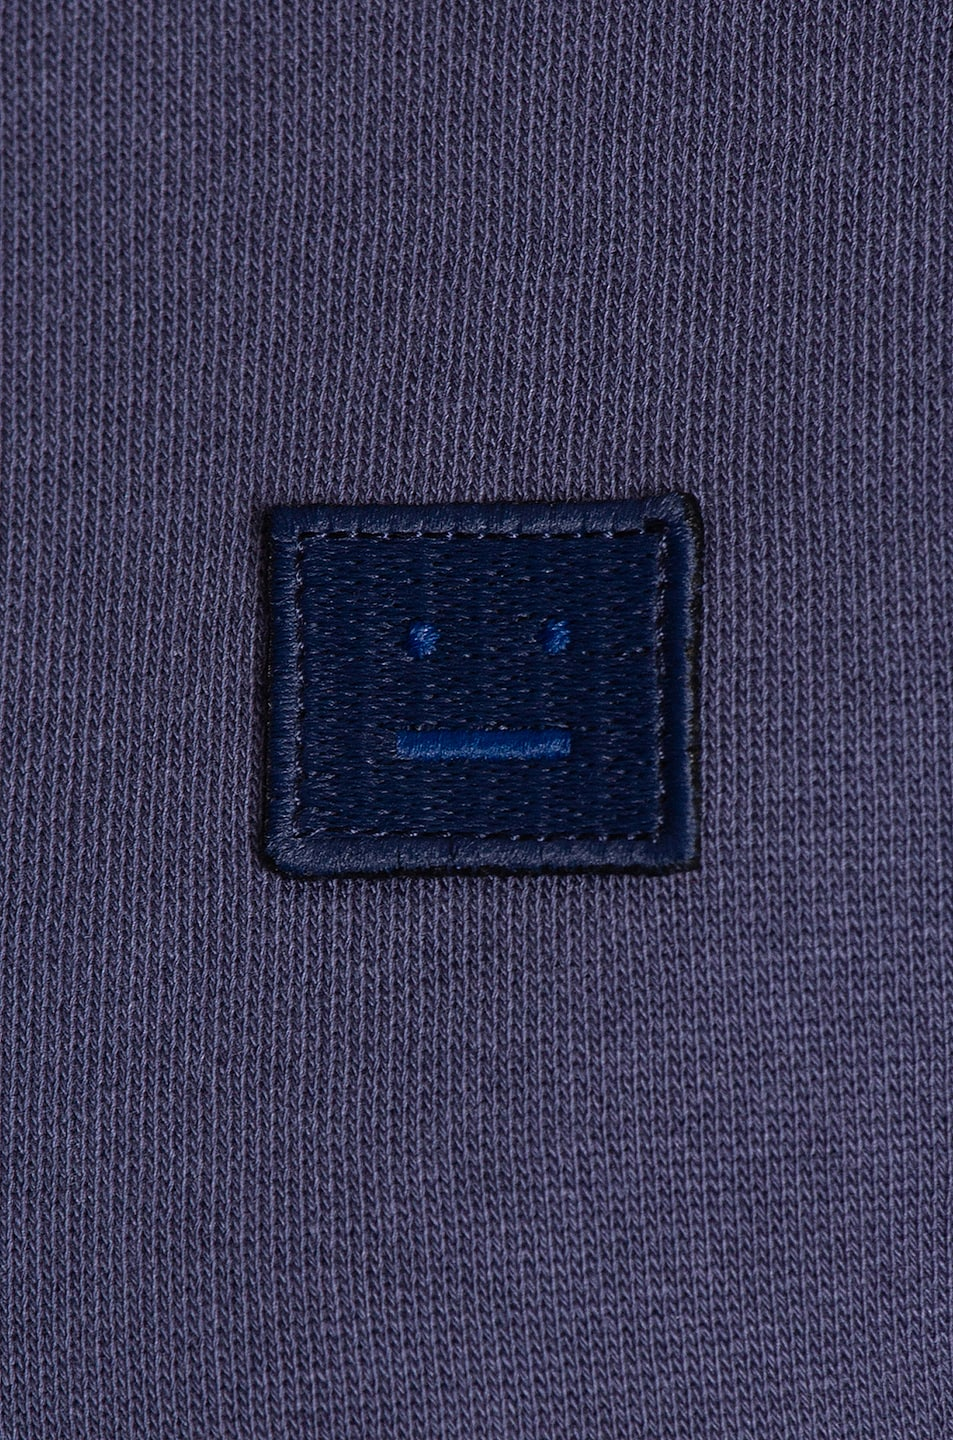 Image 5 of Acne Studios Fairview Face Sweatshirt in Denim Blue